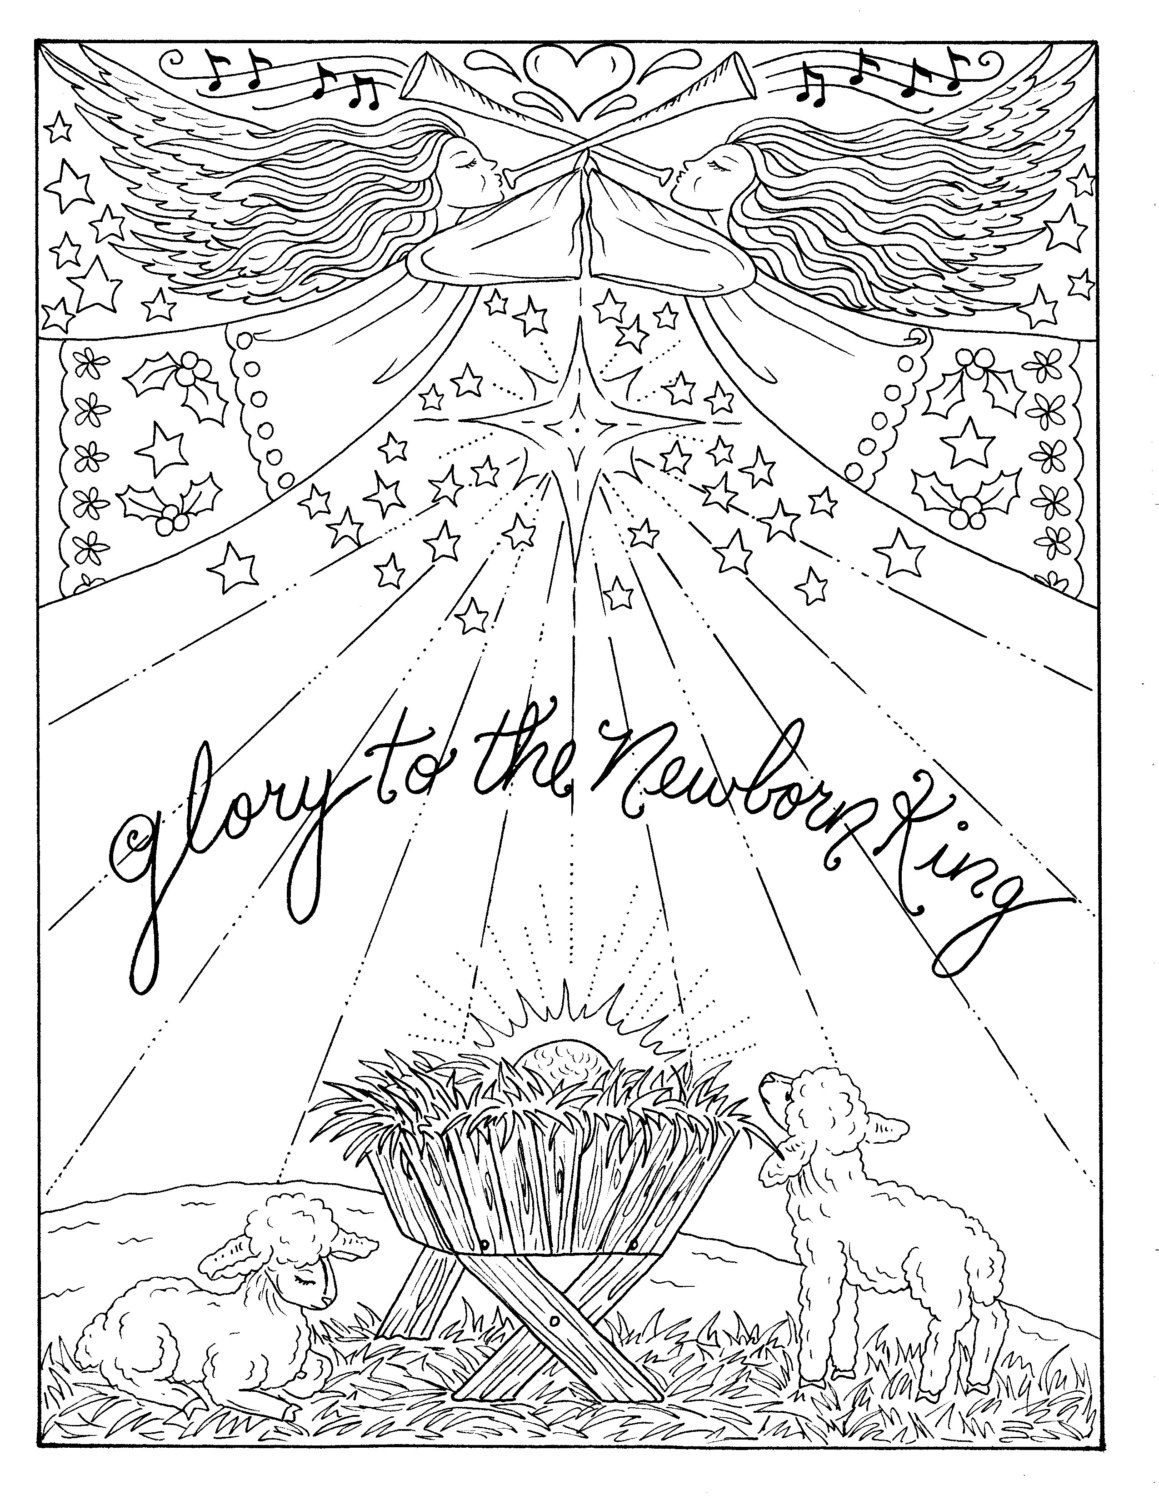 christmas christian coloring pages christian christmas coloring page adult coloring books art christmas pages coloring christian